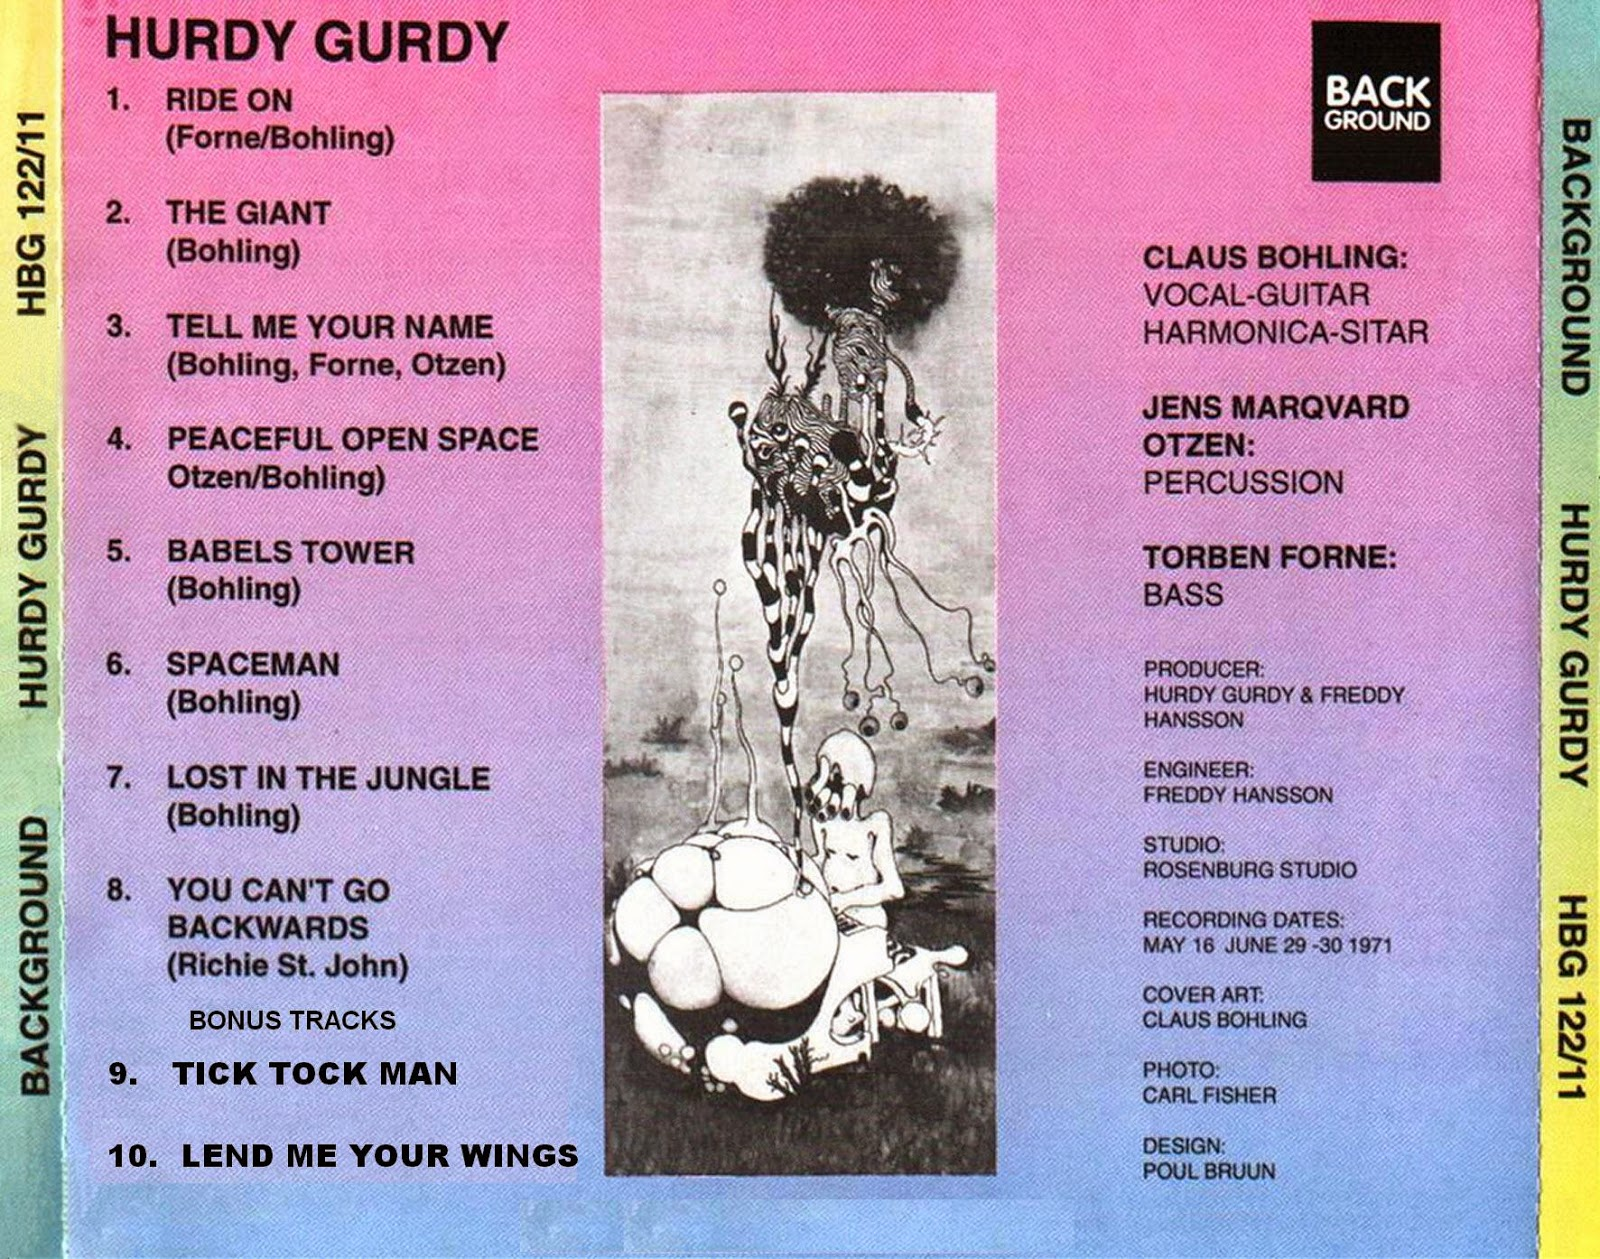 Hurdy Gurdy Tick Tock ManLend Me Your Wings